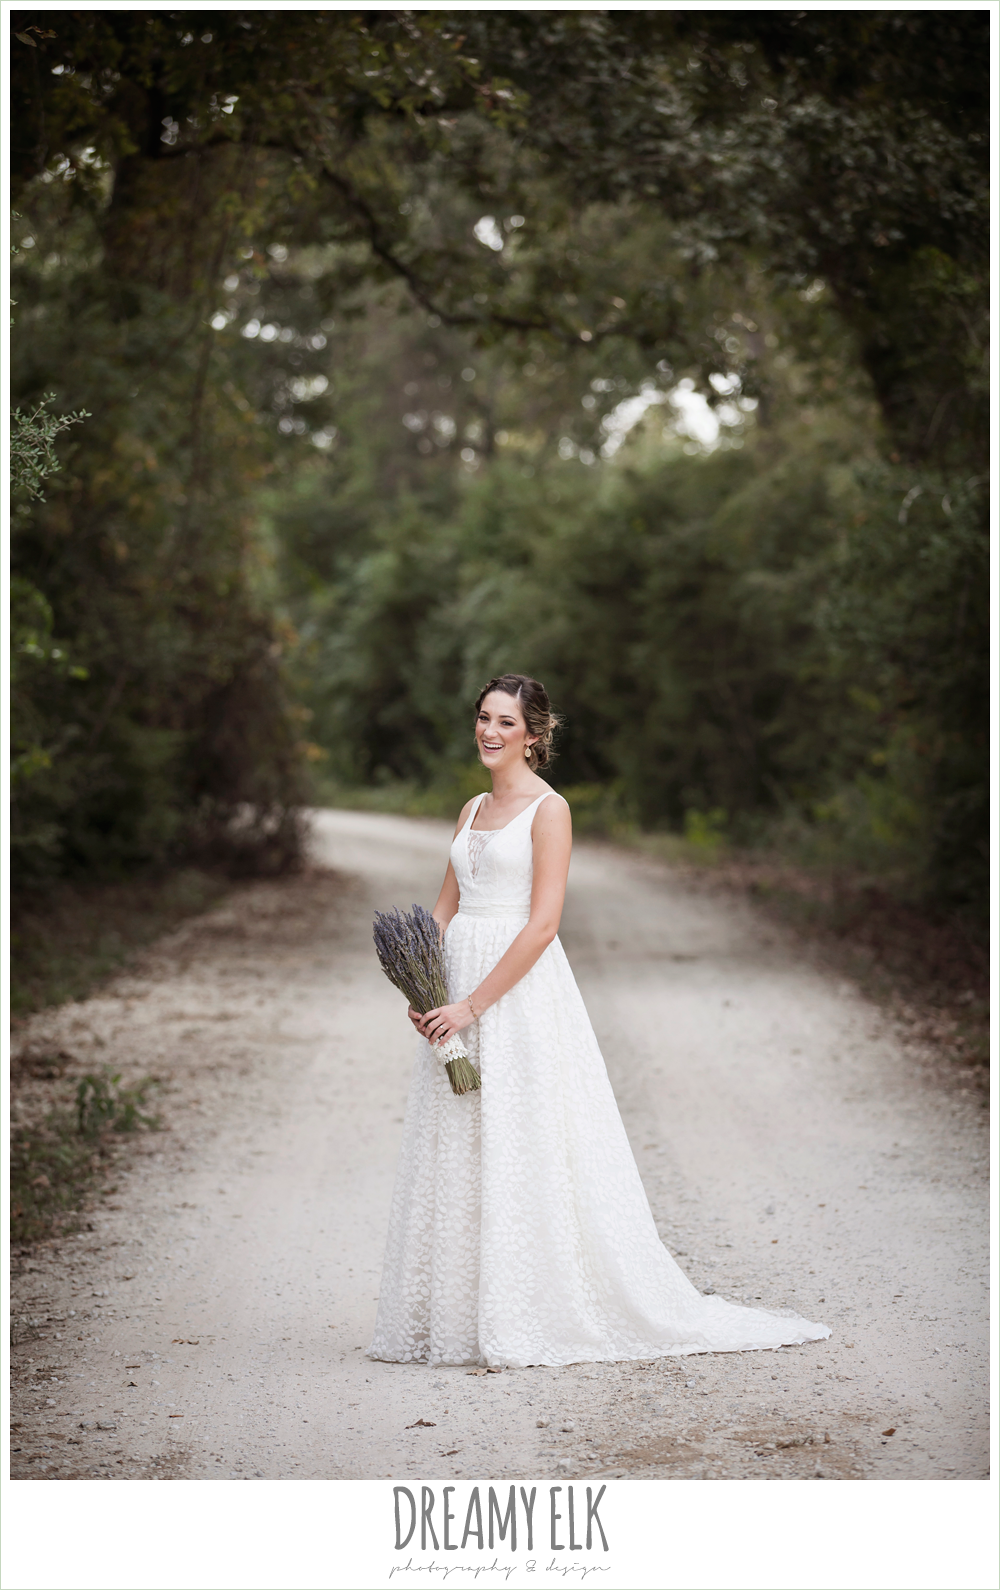 country rustic bridal portrait, lavender wedding bouquet, the amish barn at edge, country dirt road {dreamy elk photography and design}